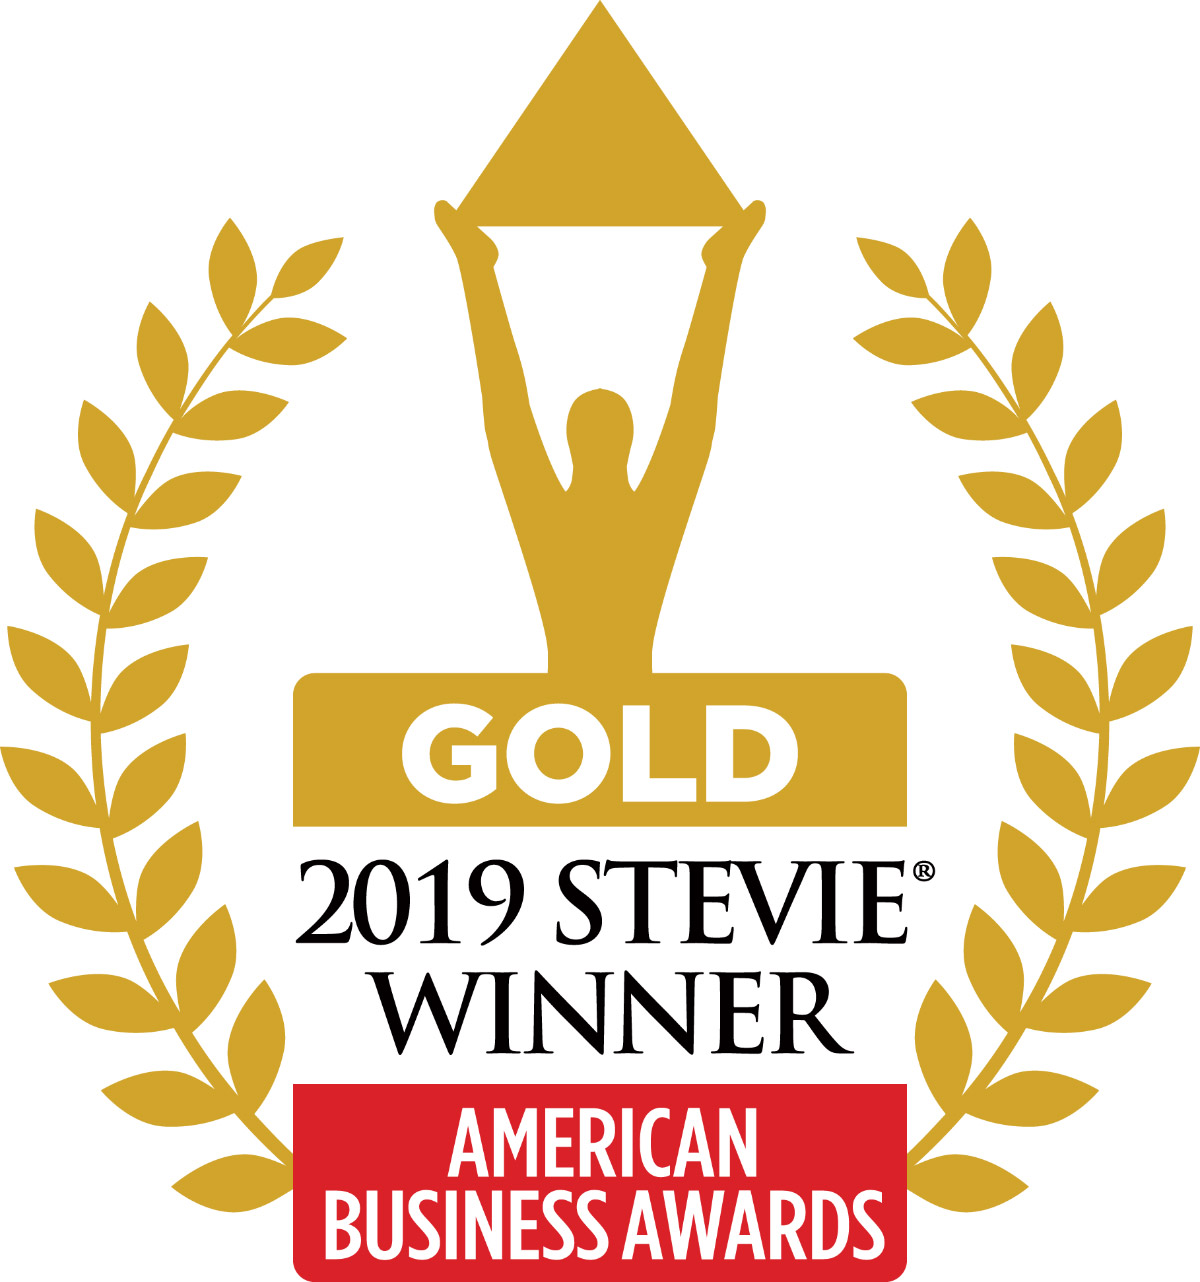 Winner Rachel King King Law Firm American Business Association Stevie Award Gold